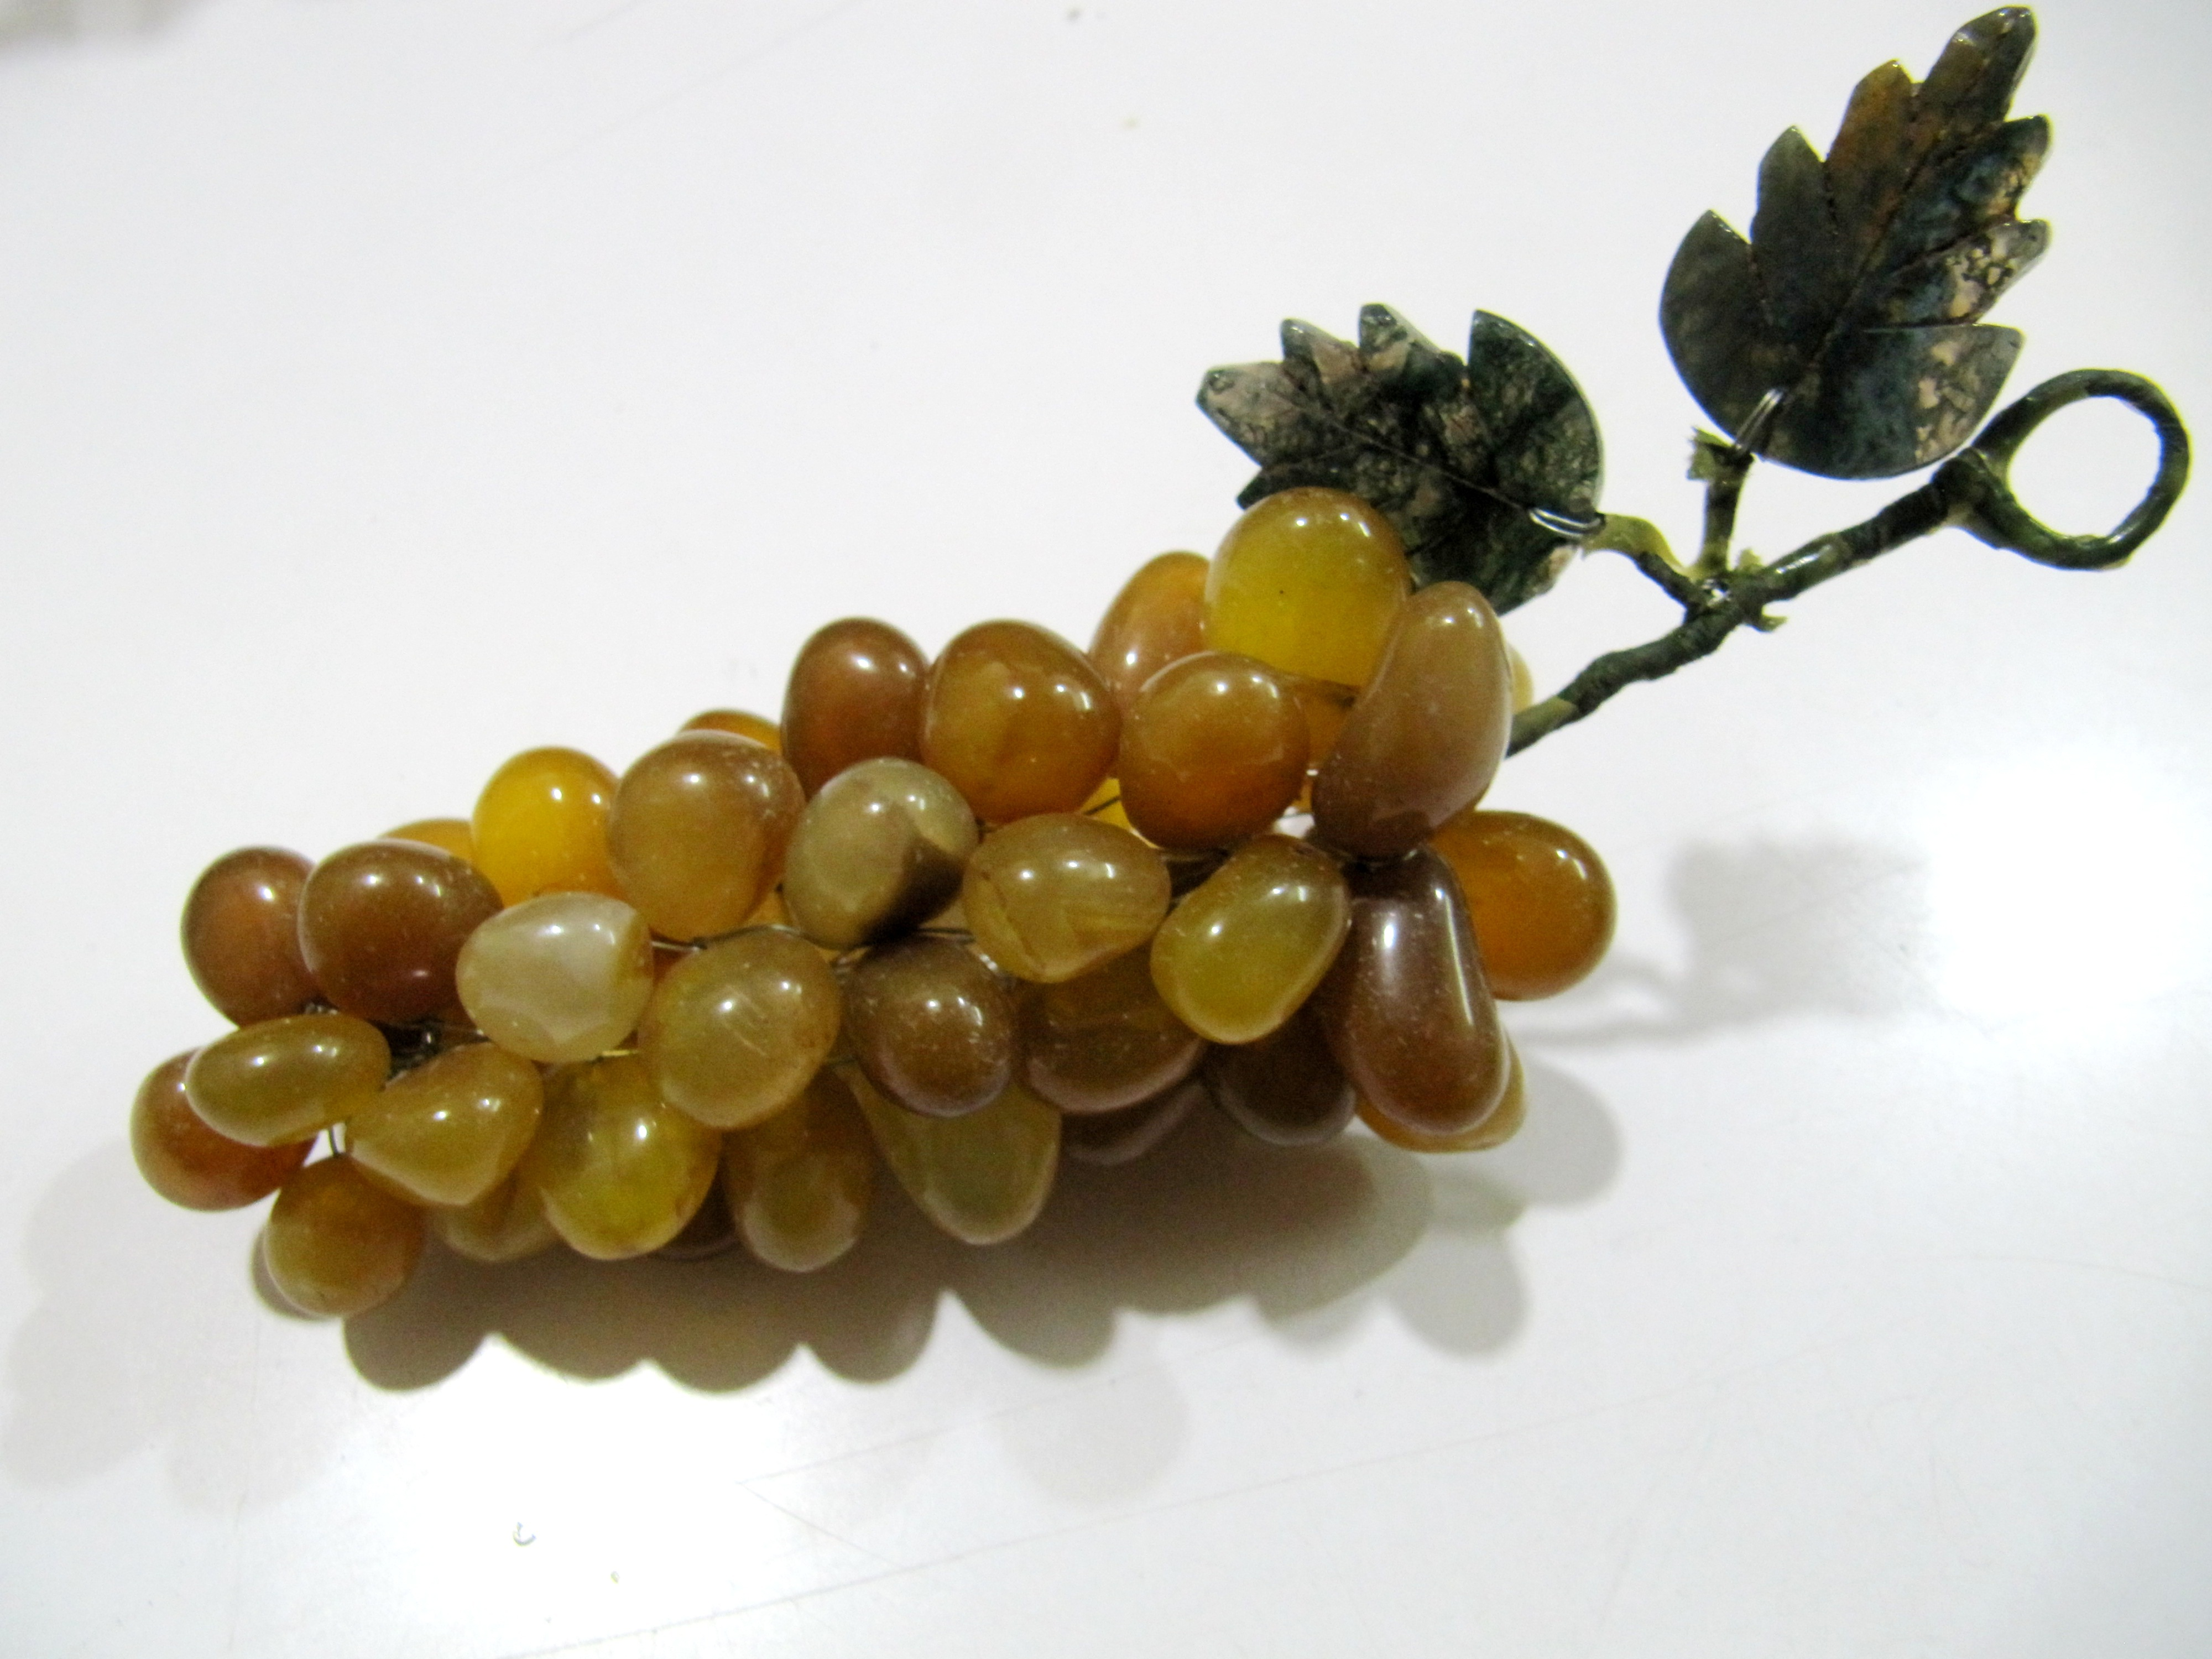 Natural Yellow Jade Stones Grapes Cluster Fake Fruits Decoration Approx 4 inches